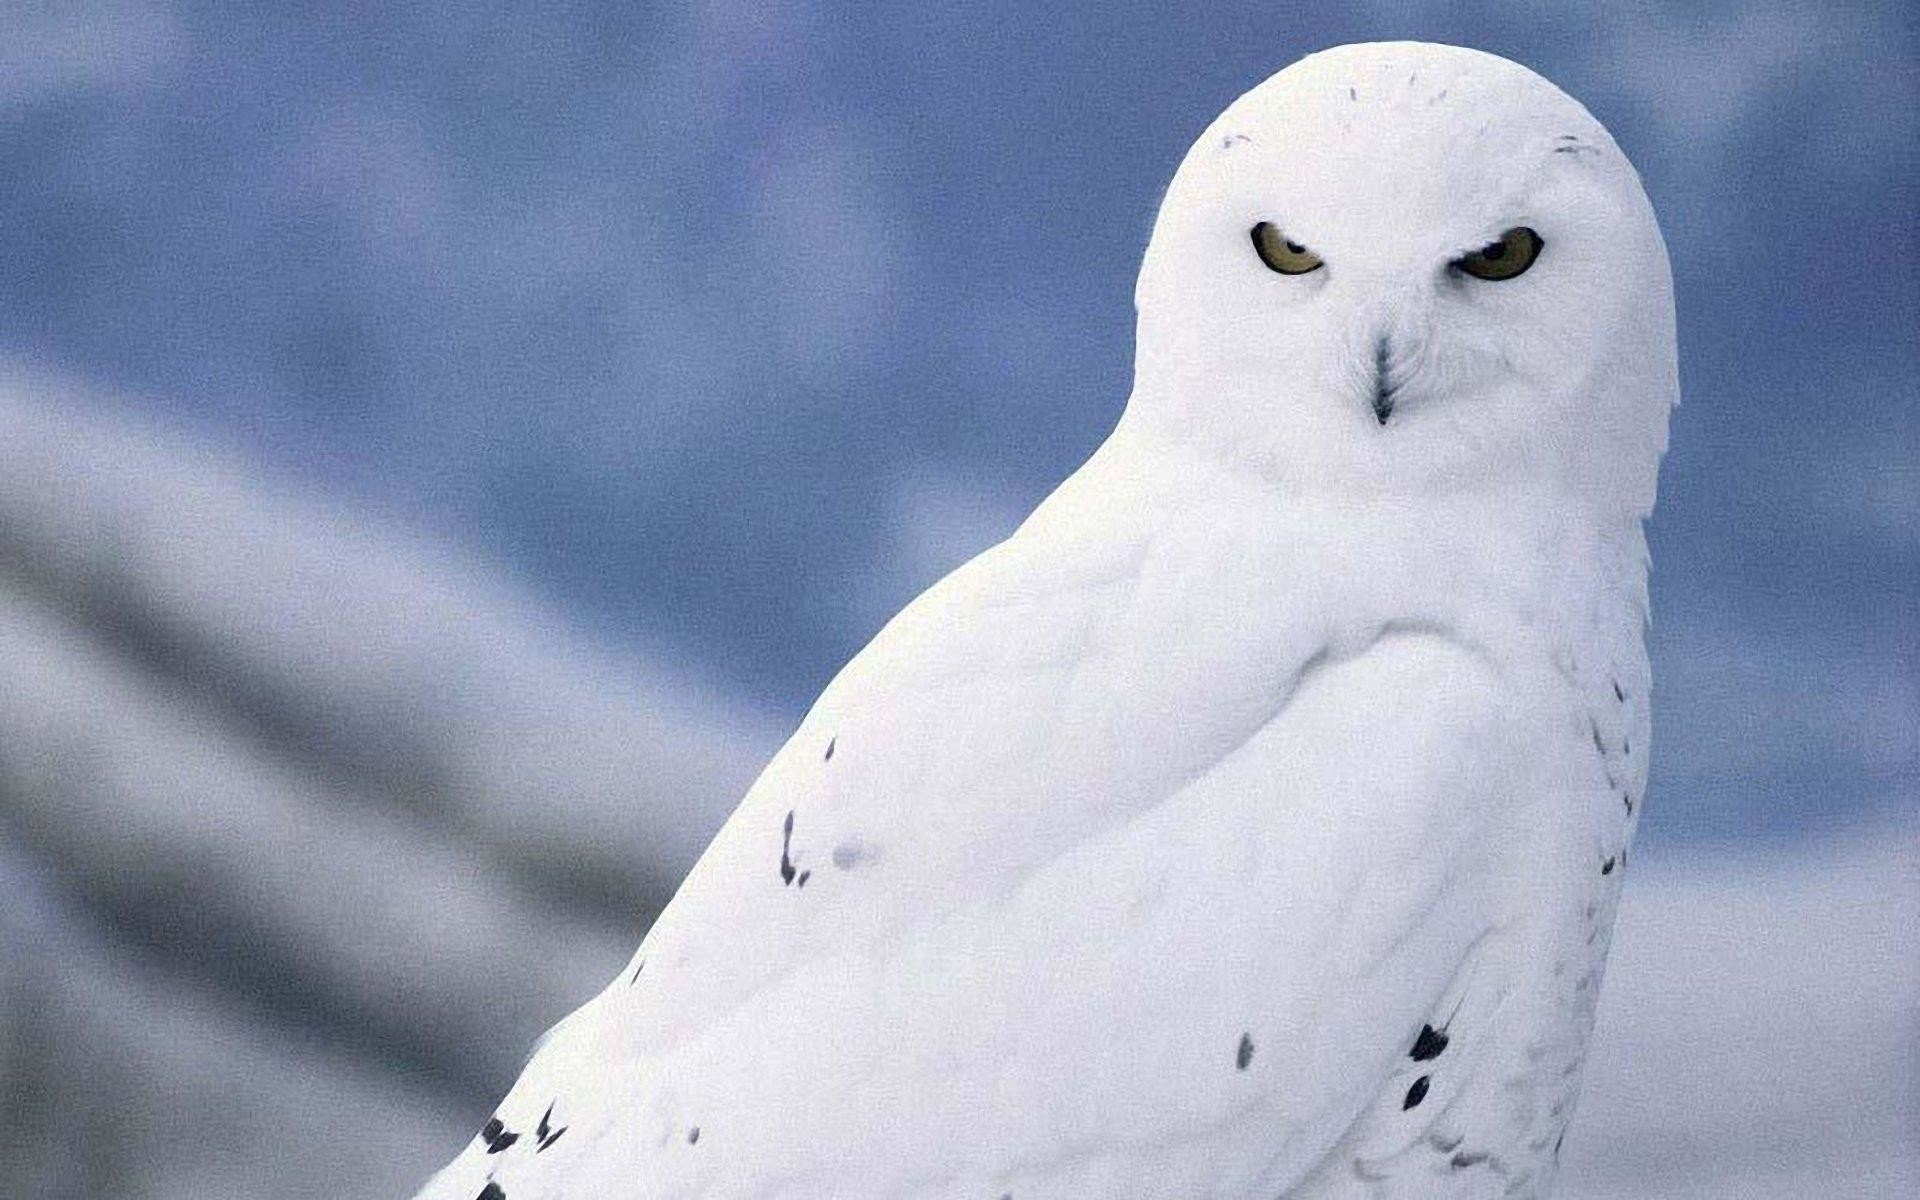 snowy owl wallpaper hd (78+ images)